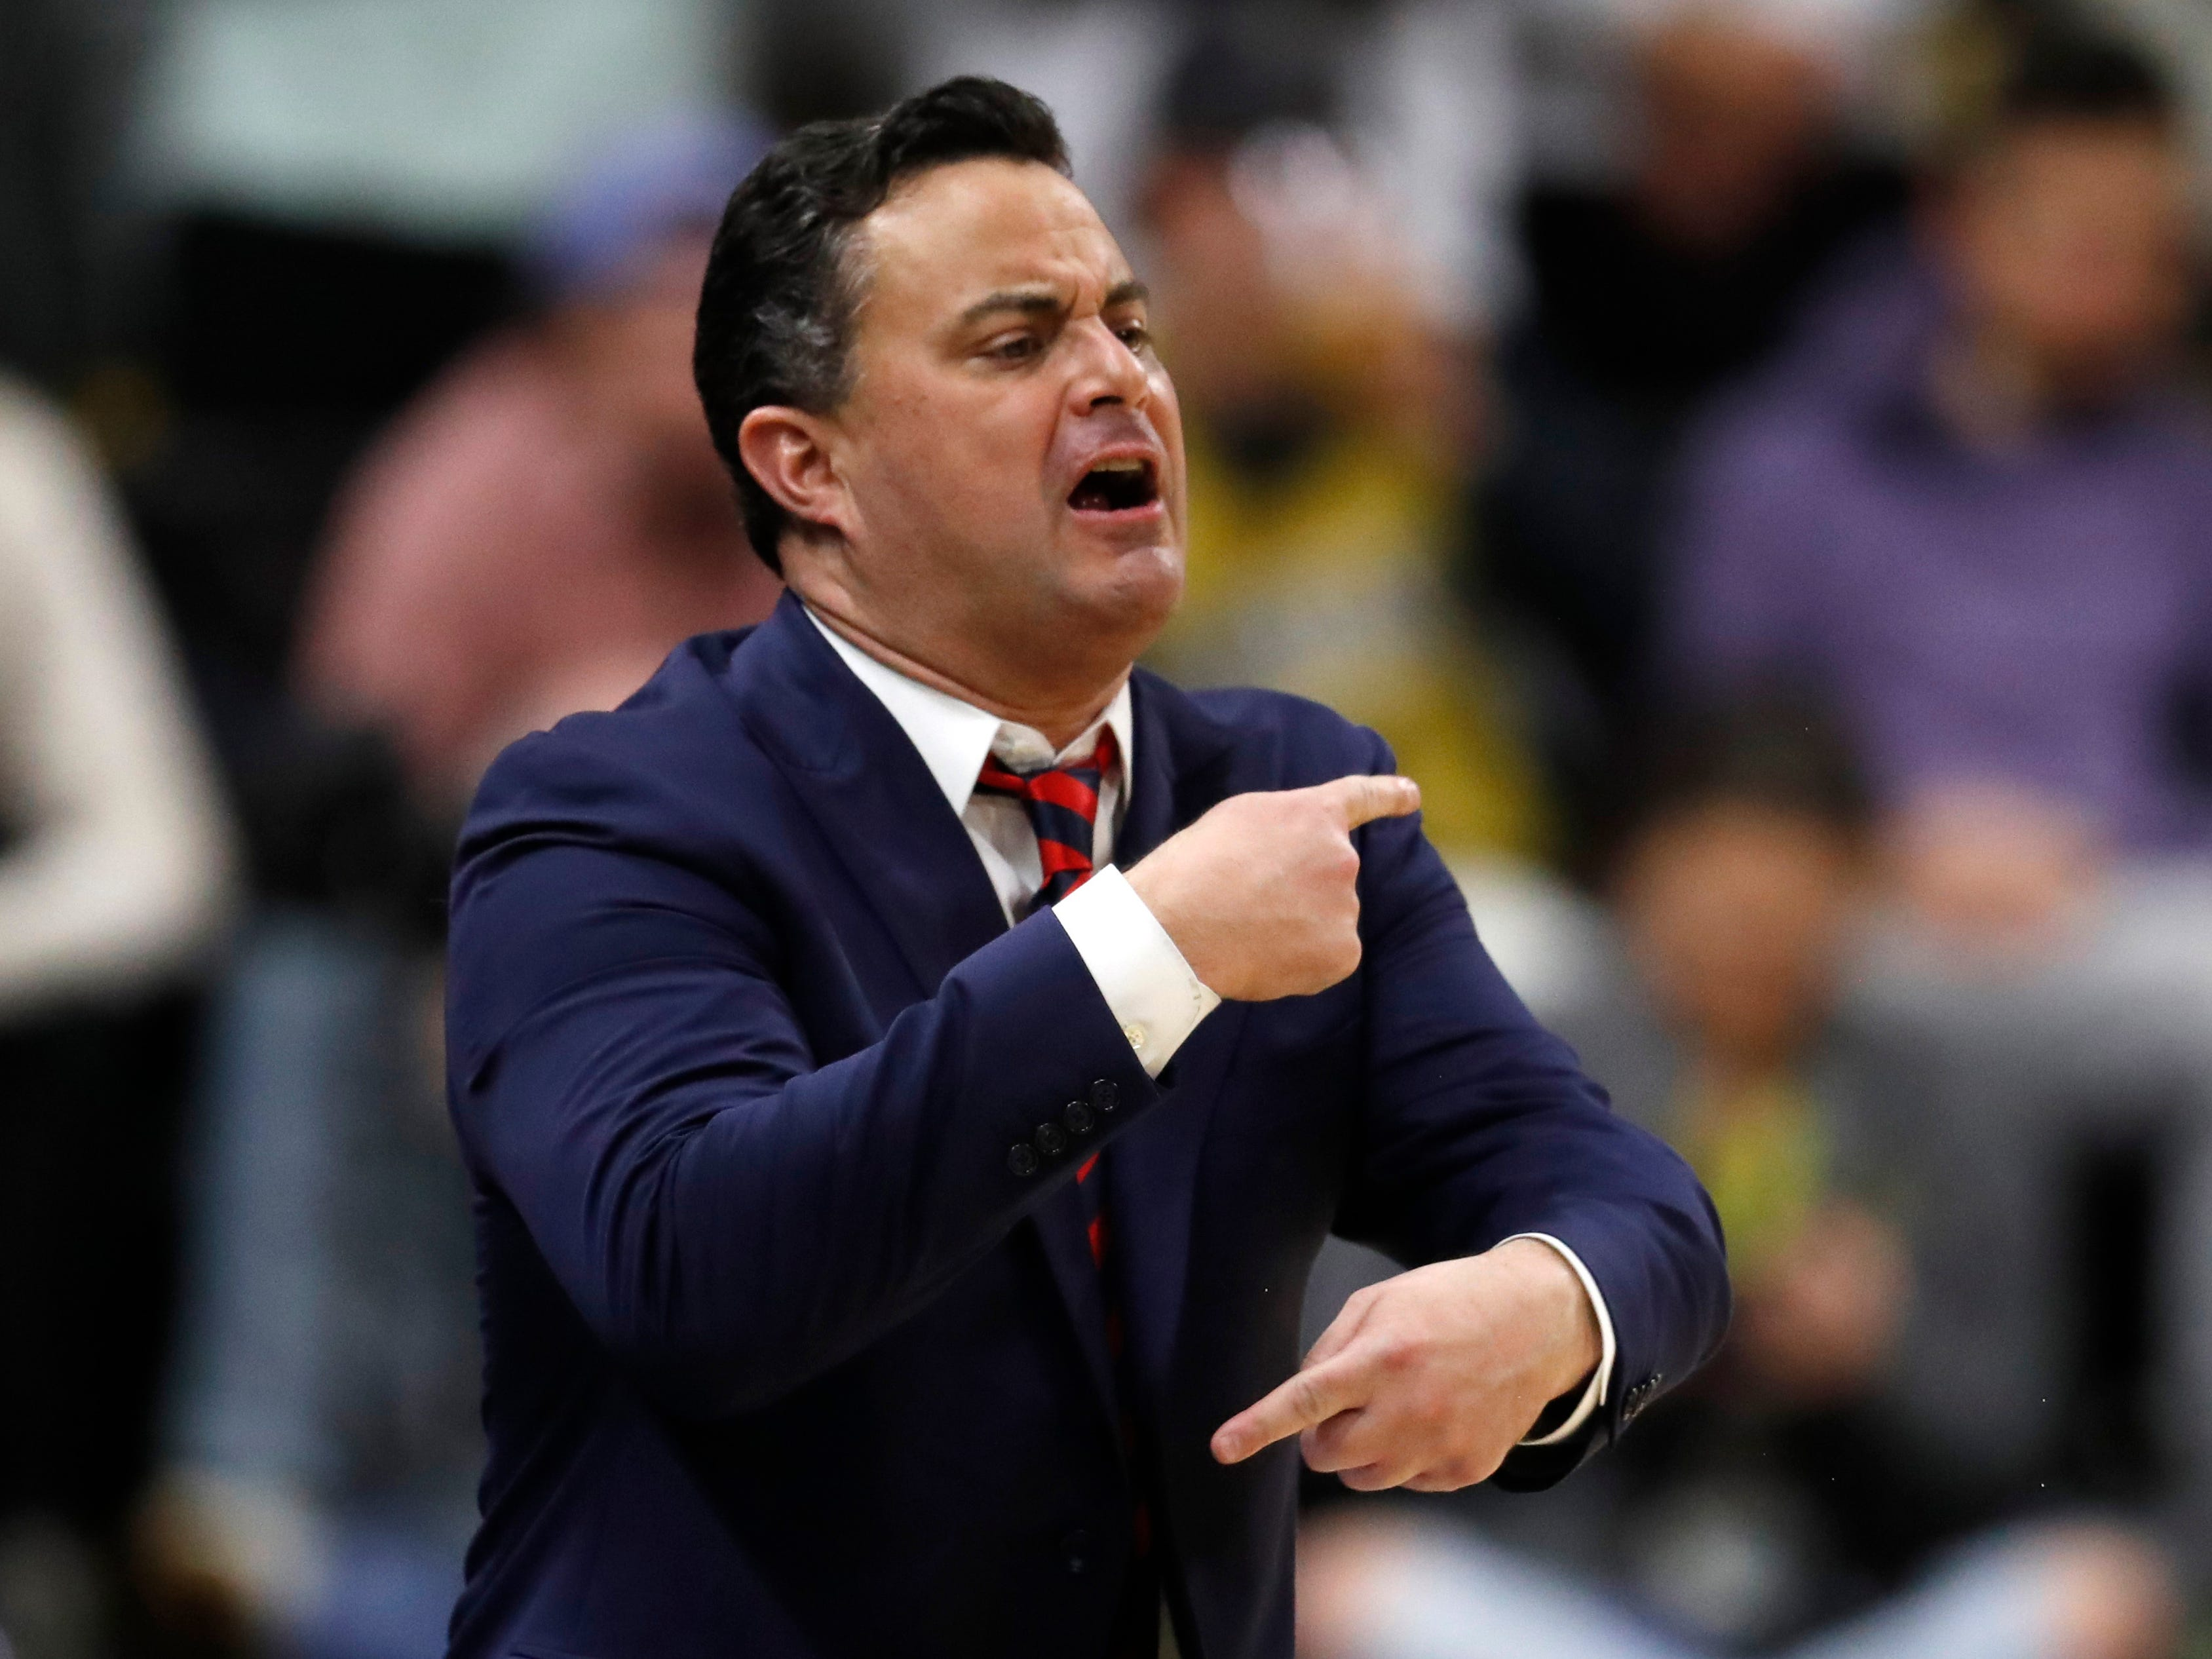 Arizona head coach Sean Miller directs his team against Colorado in the first half of an NCAA college basketball game Sunday, Feb. 17, 2019, in Boulder, Colo.